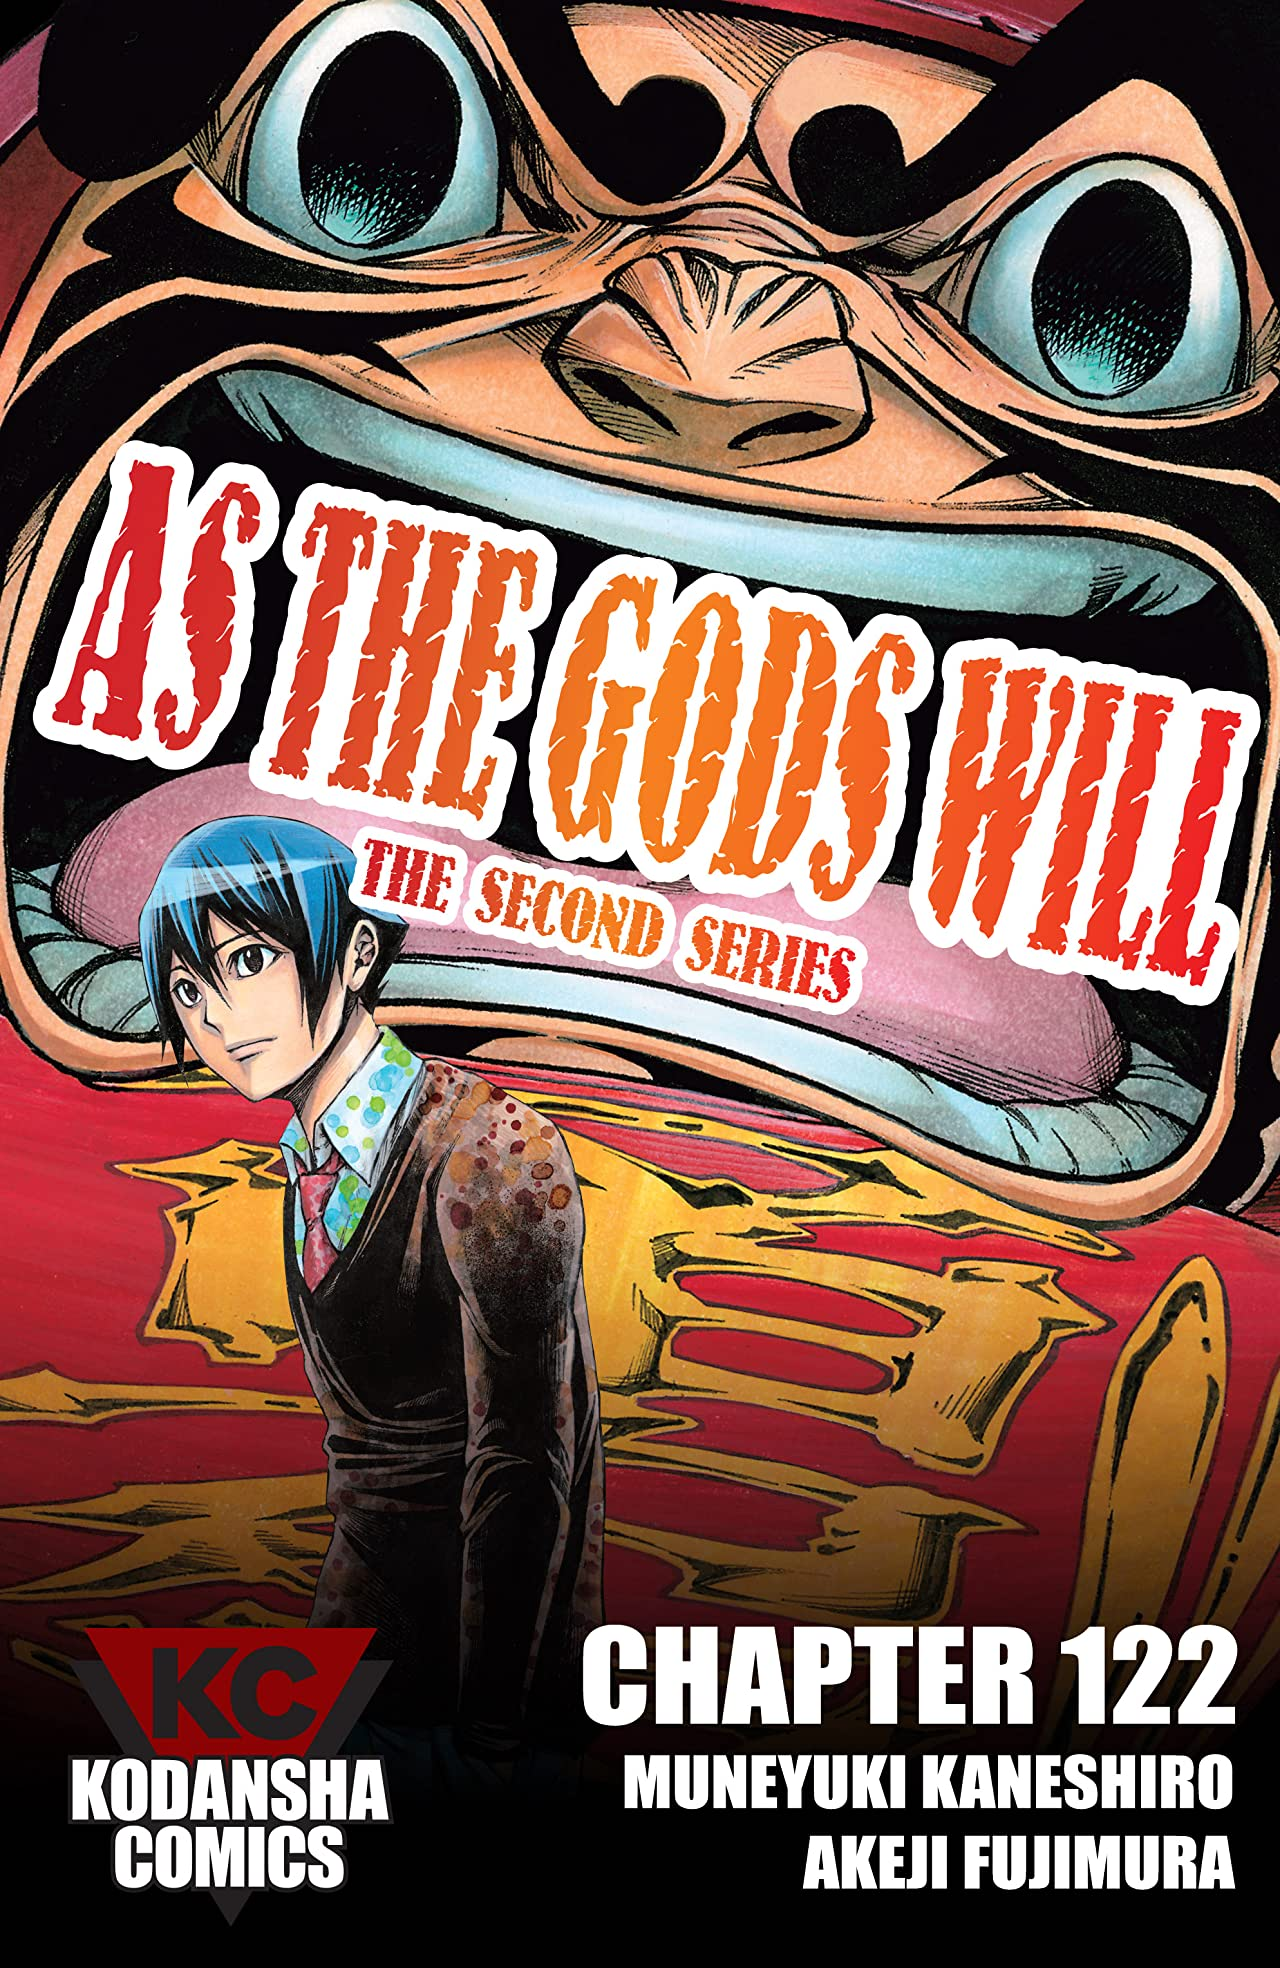 As The Gods Will: The Second Series #122